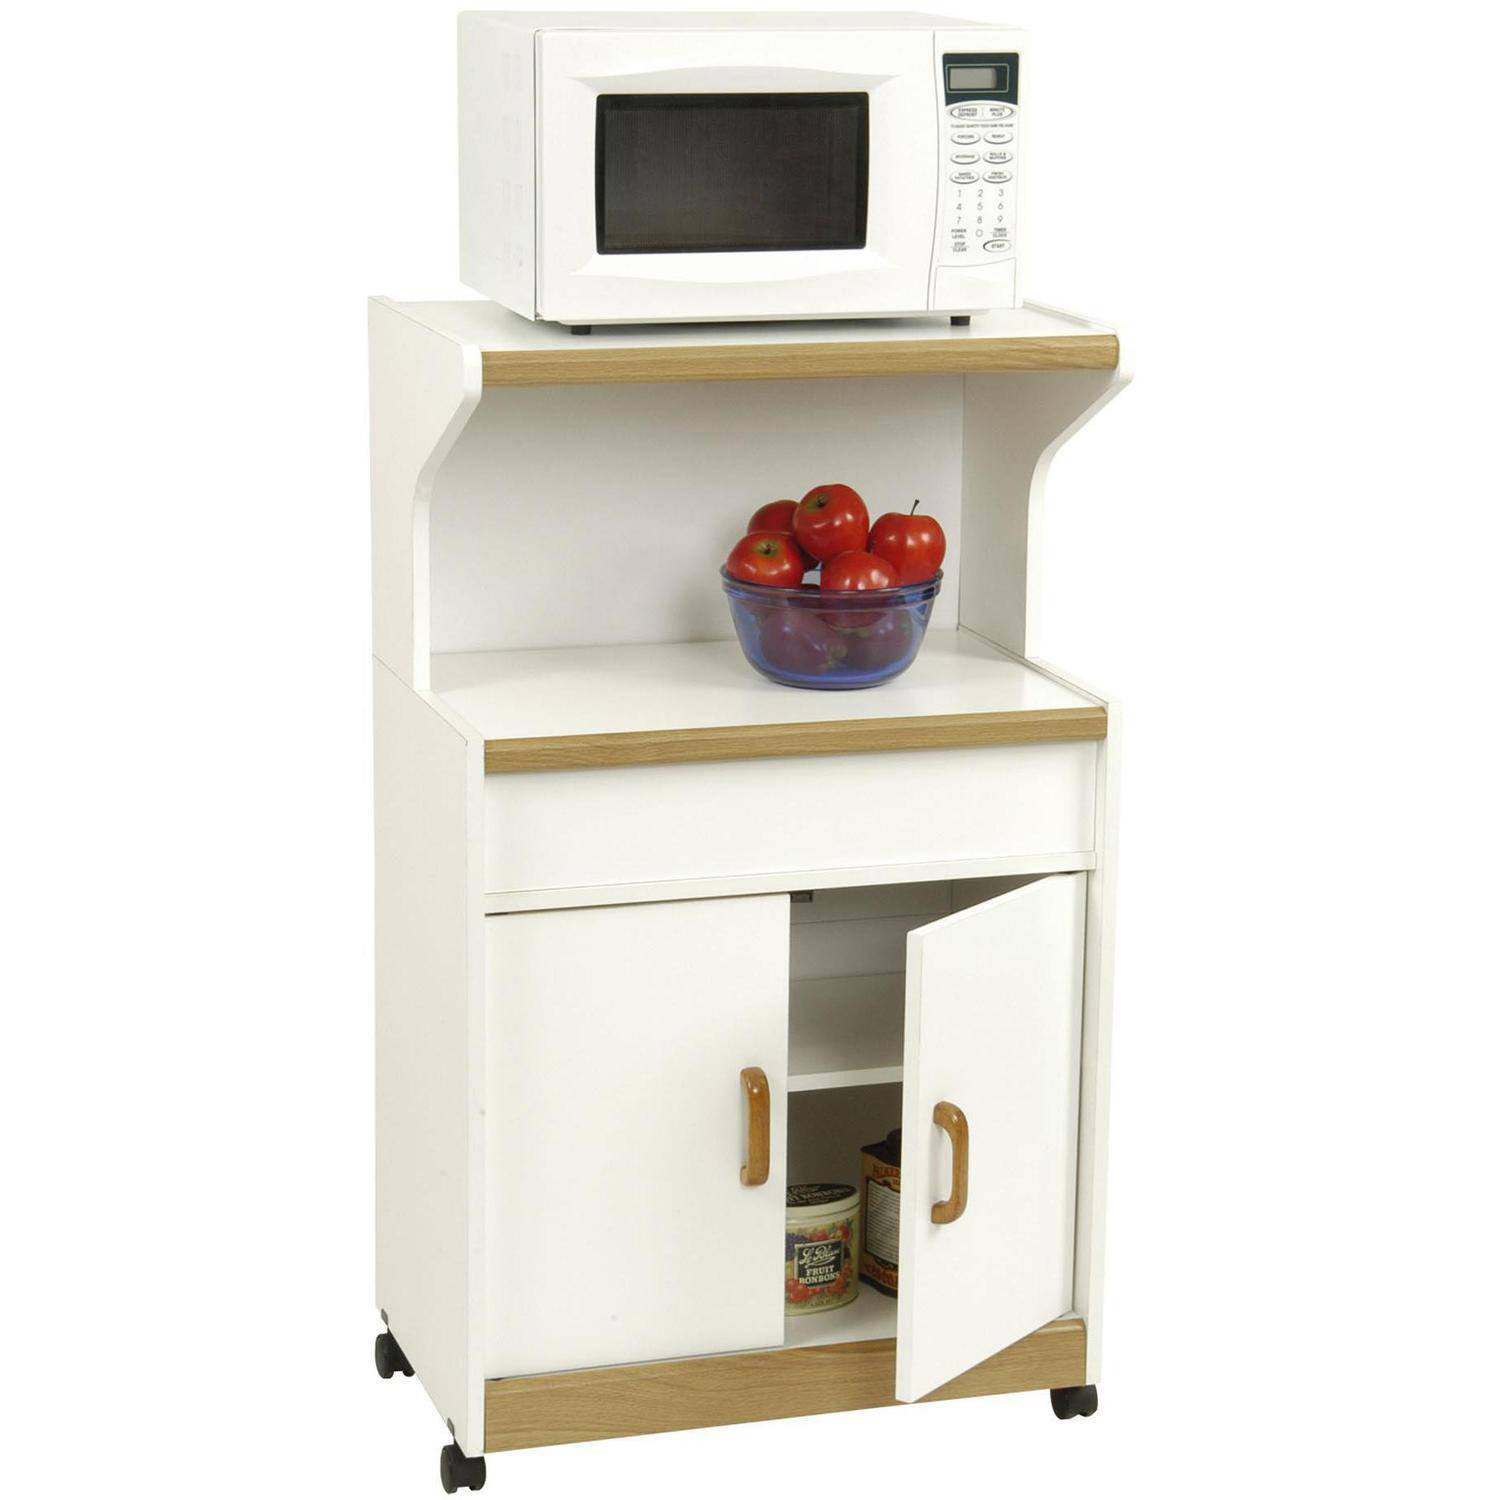 Kitchen Cabinet For Microwave Microwave Cabinet With Shelves White Walmartcom